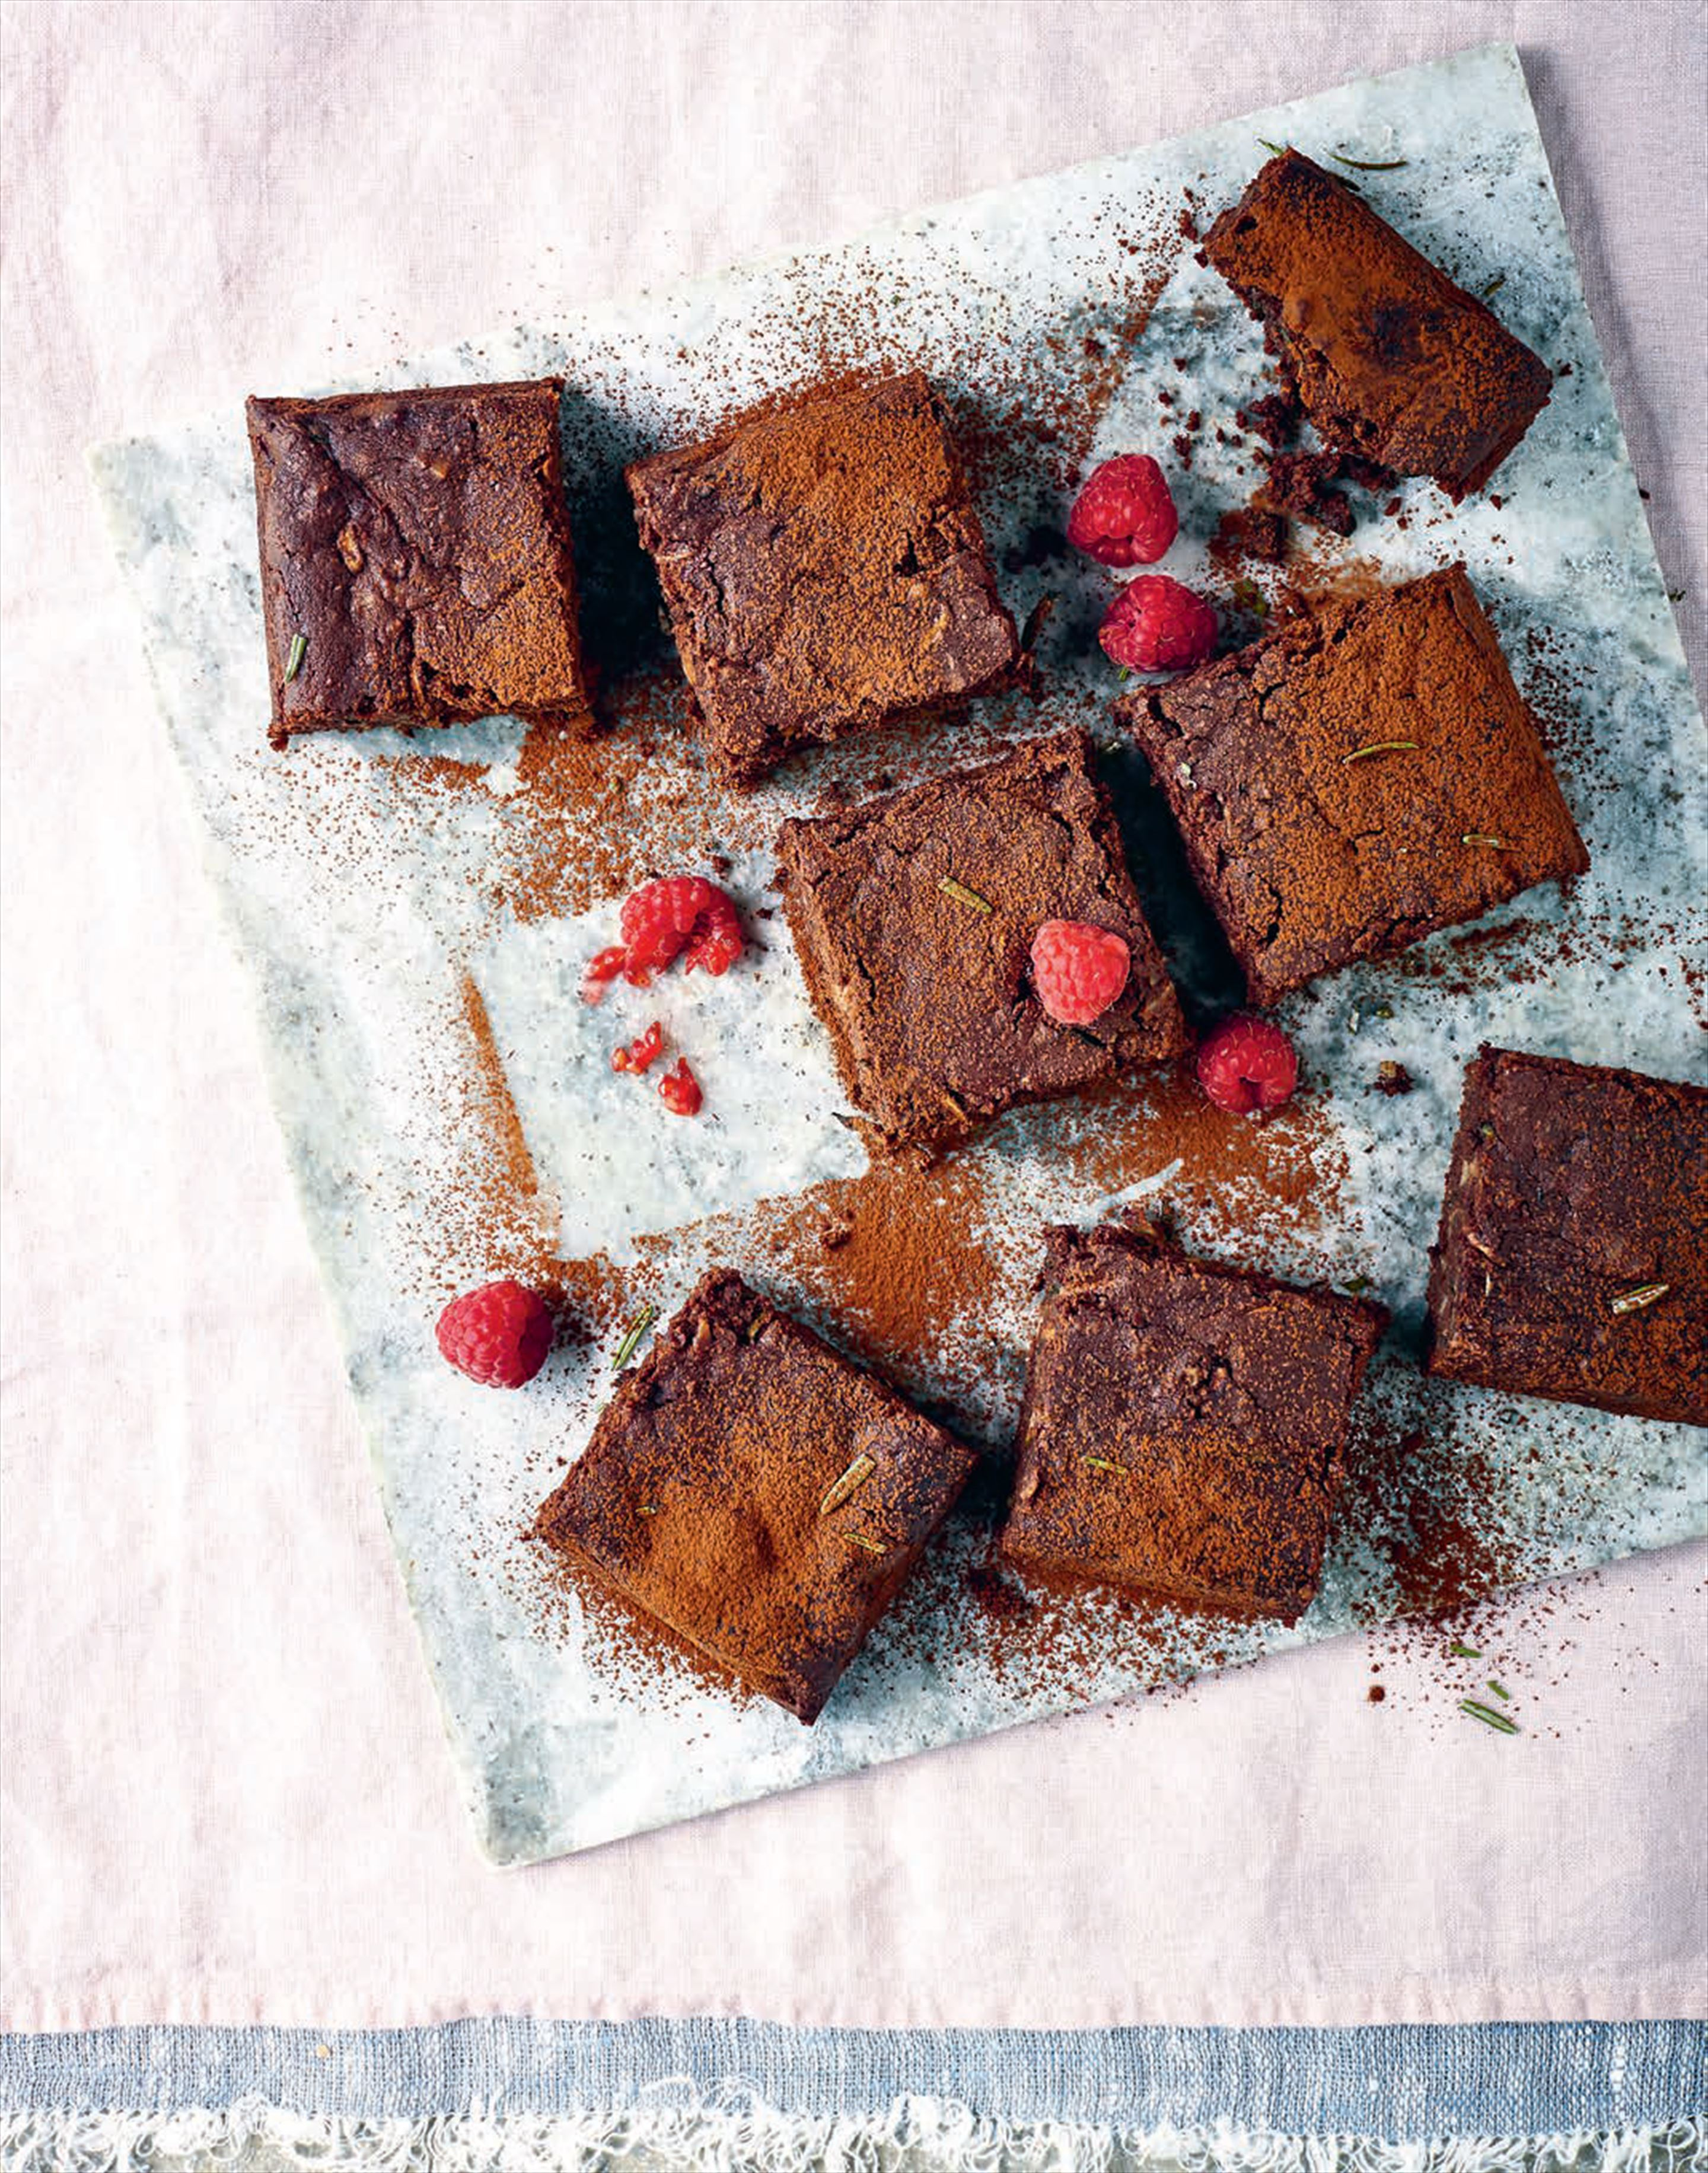 Courgette and rosemary chocolate brownies